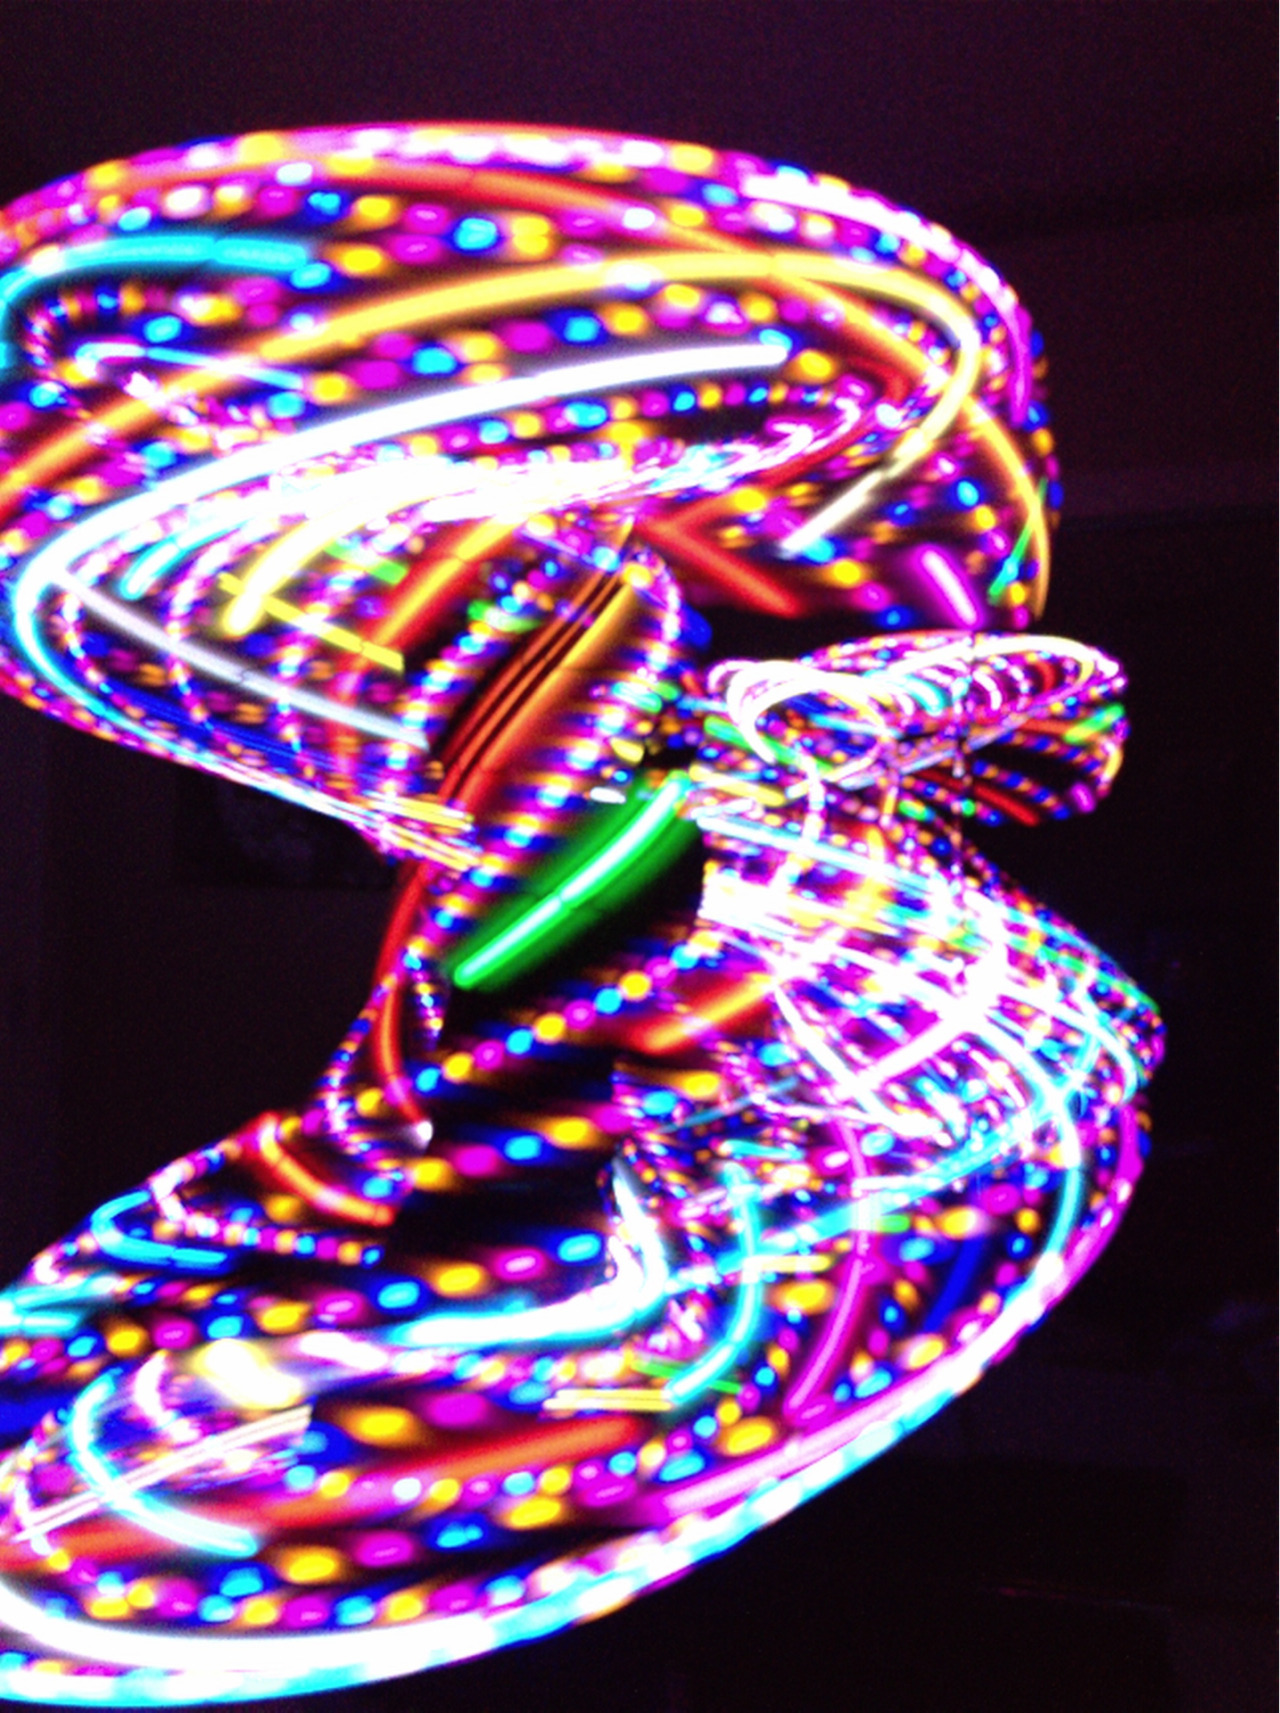 moodhoops:  Moodhoops Blaze the-smokerscircle:  Playing with my hoop(: